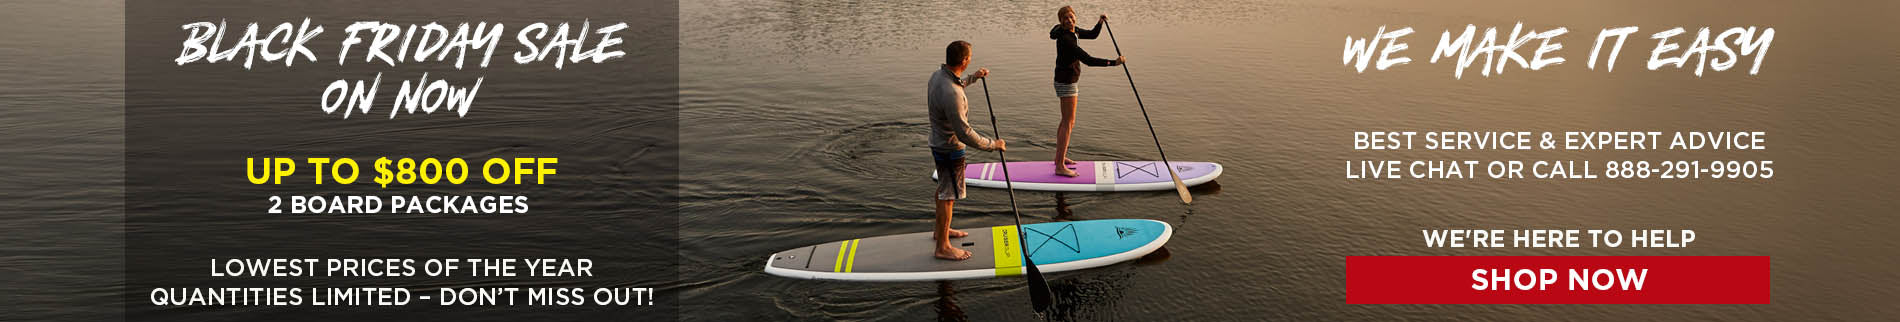 Purple Stand Up Paddle Boards